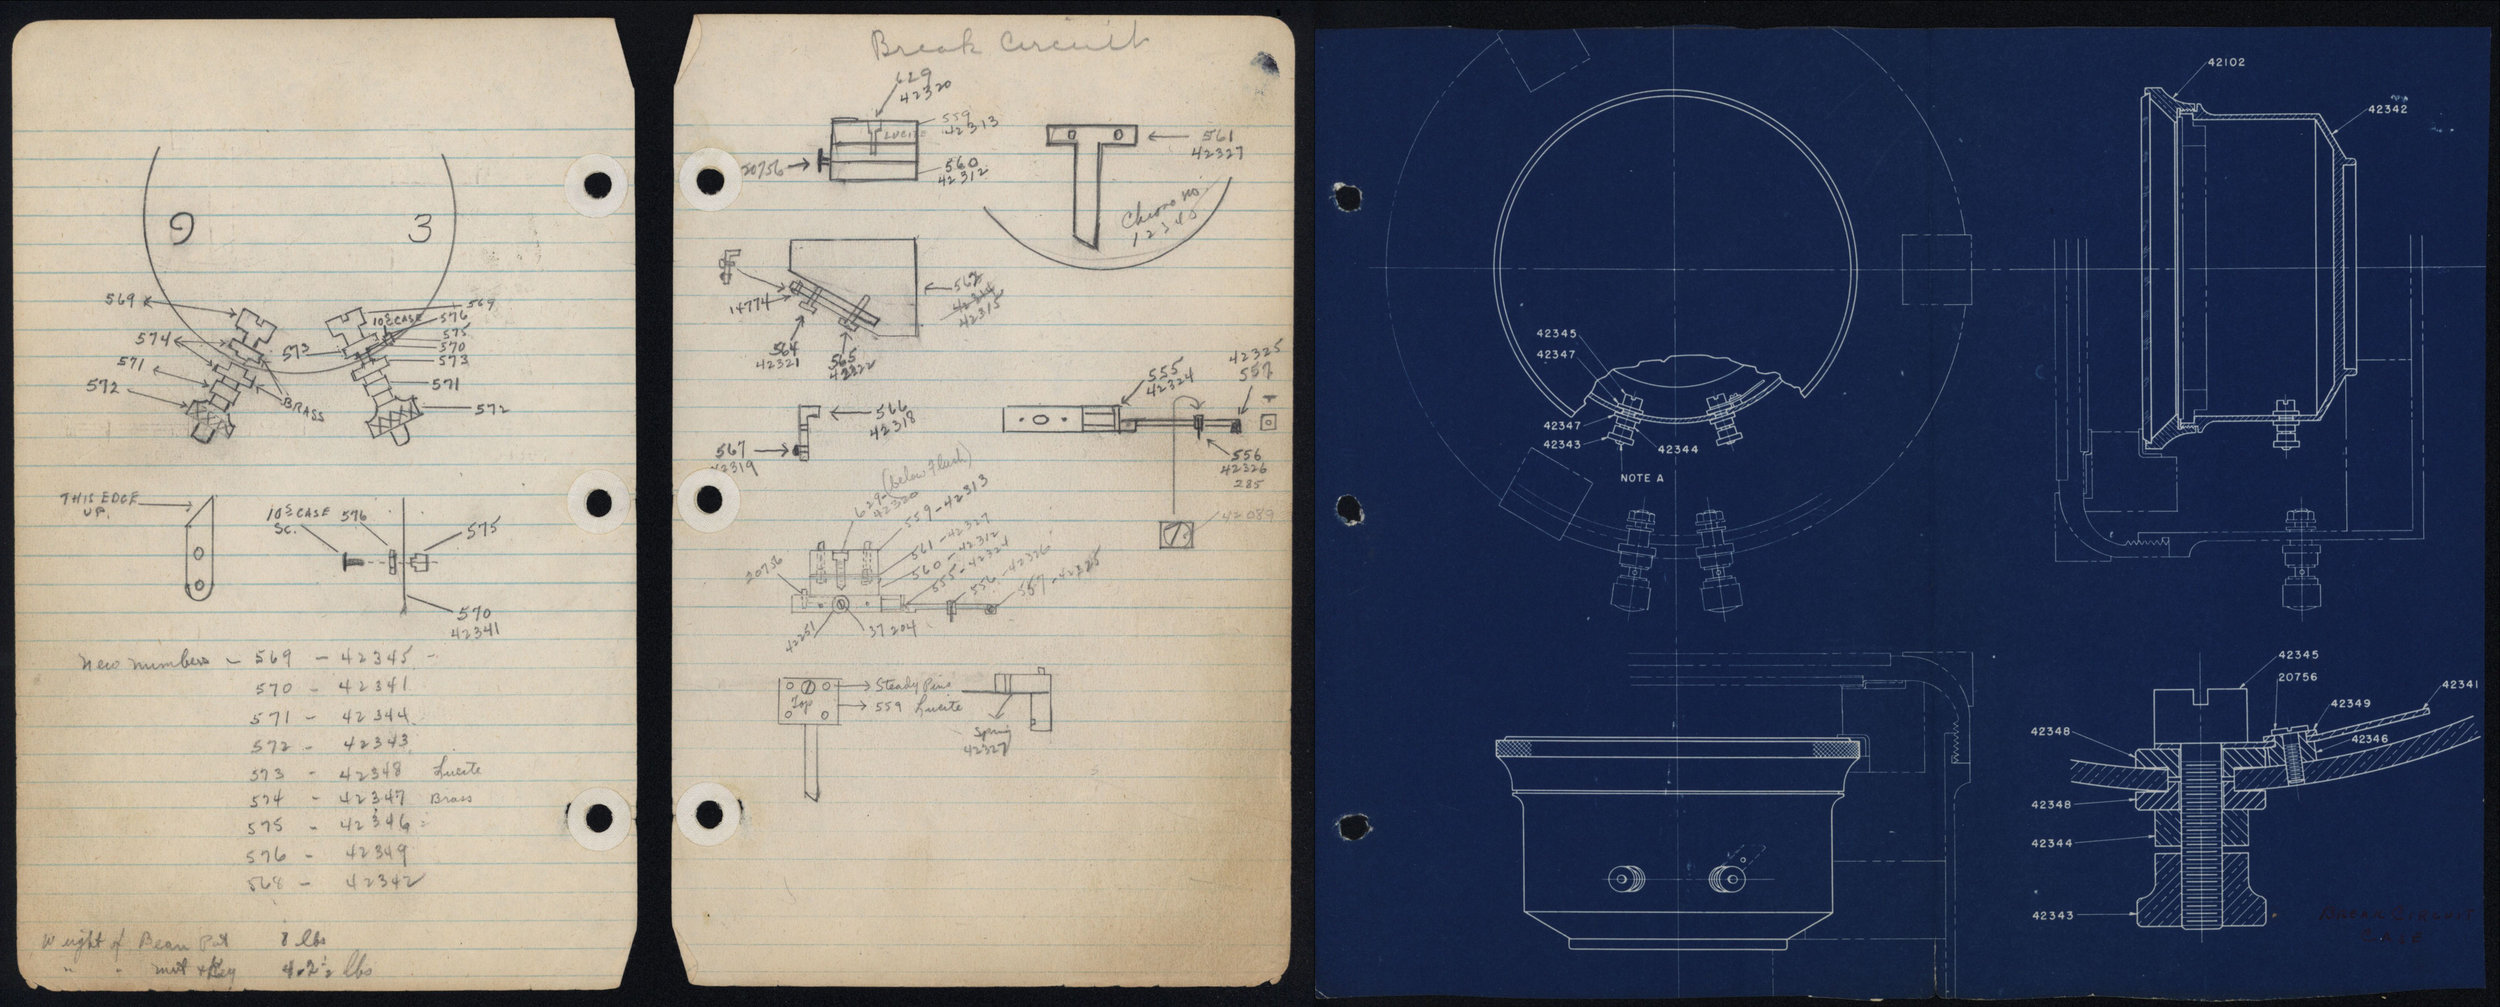 Drawings from Leroy May's notes on Hamilton chronometer. 1941-1946.